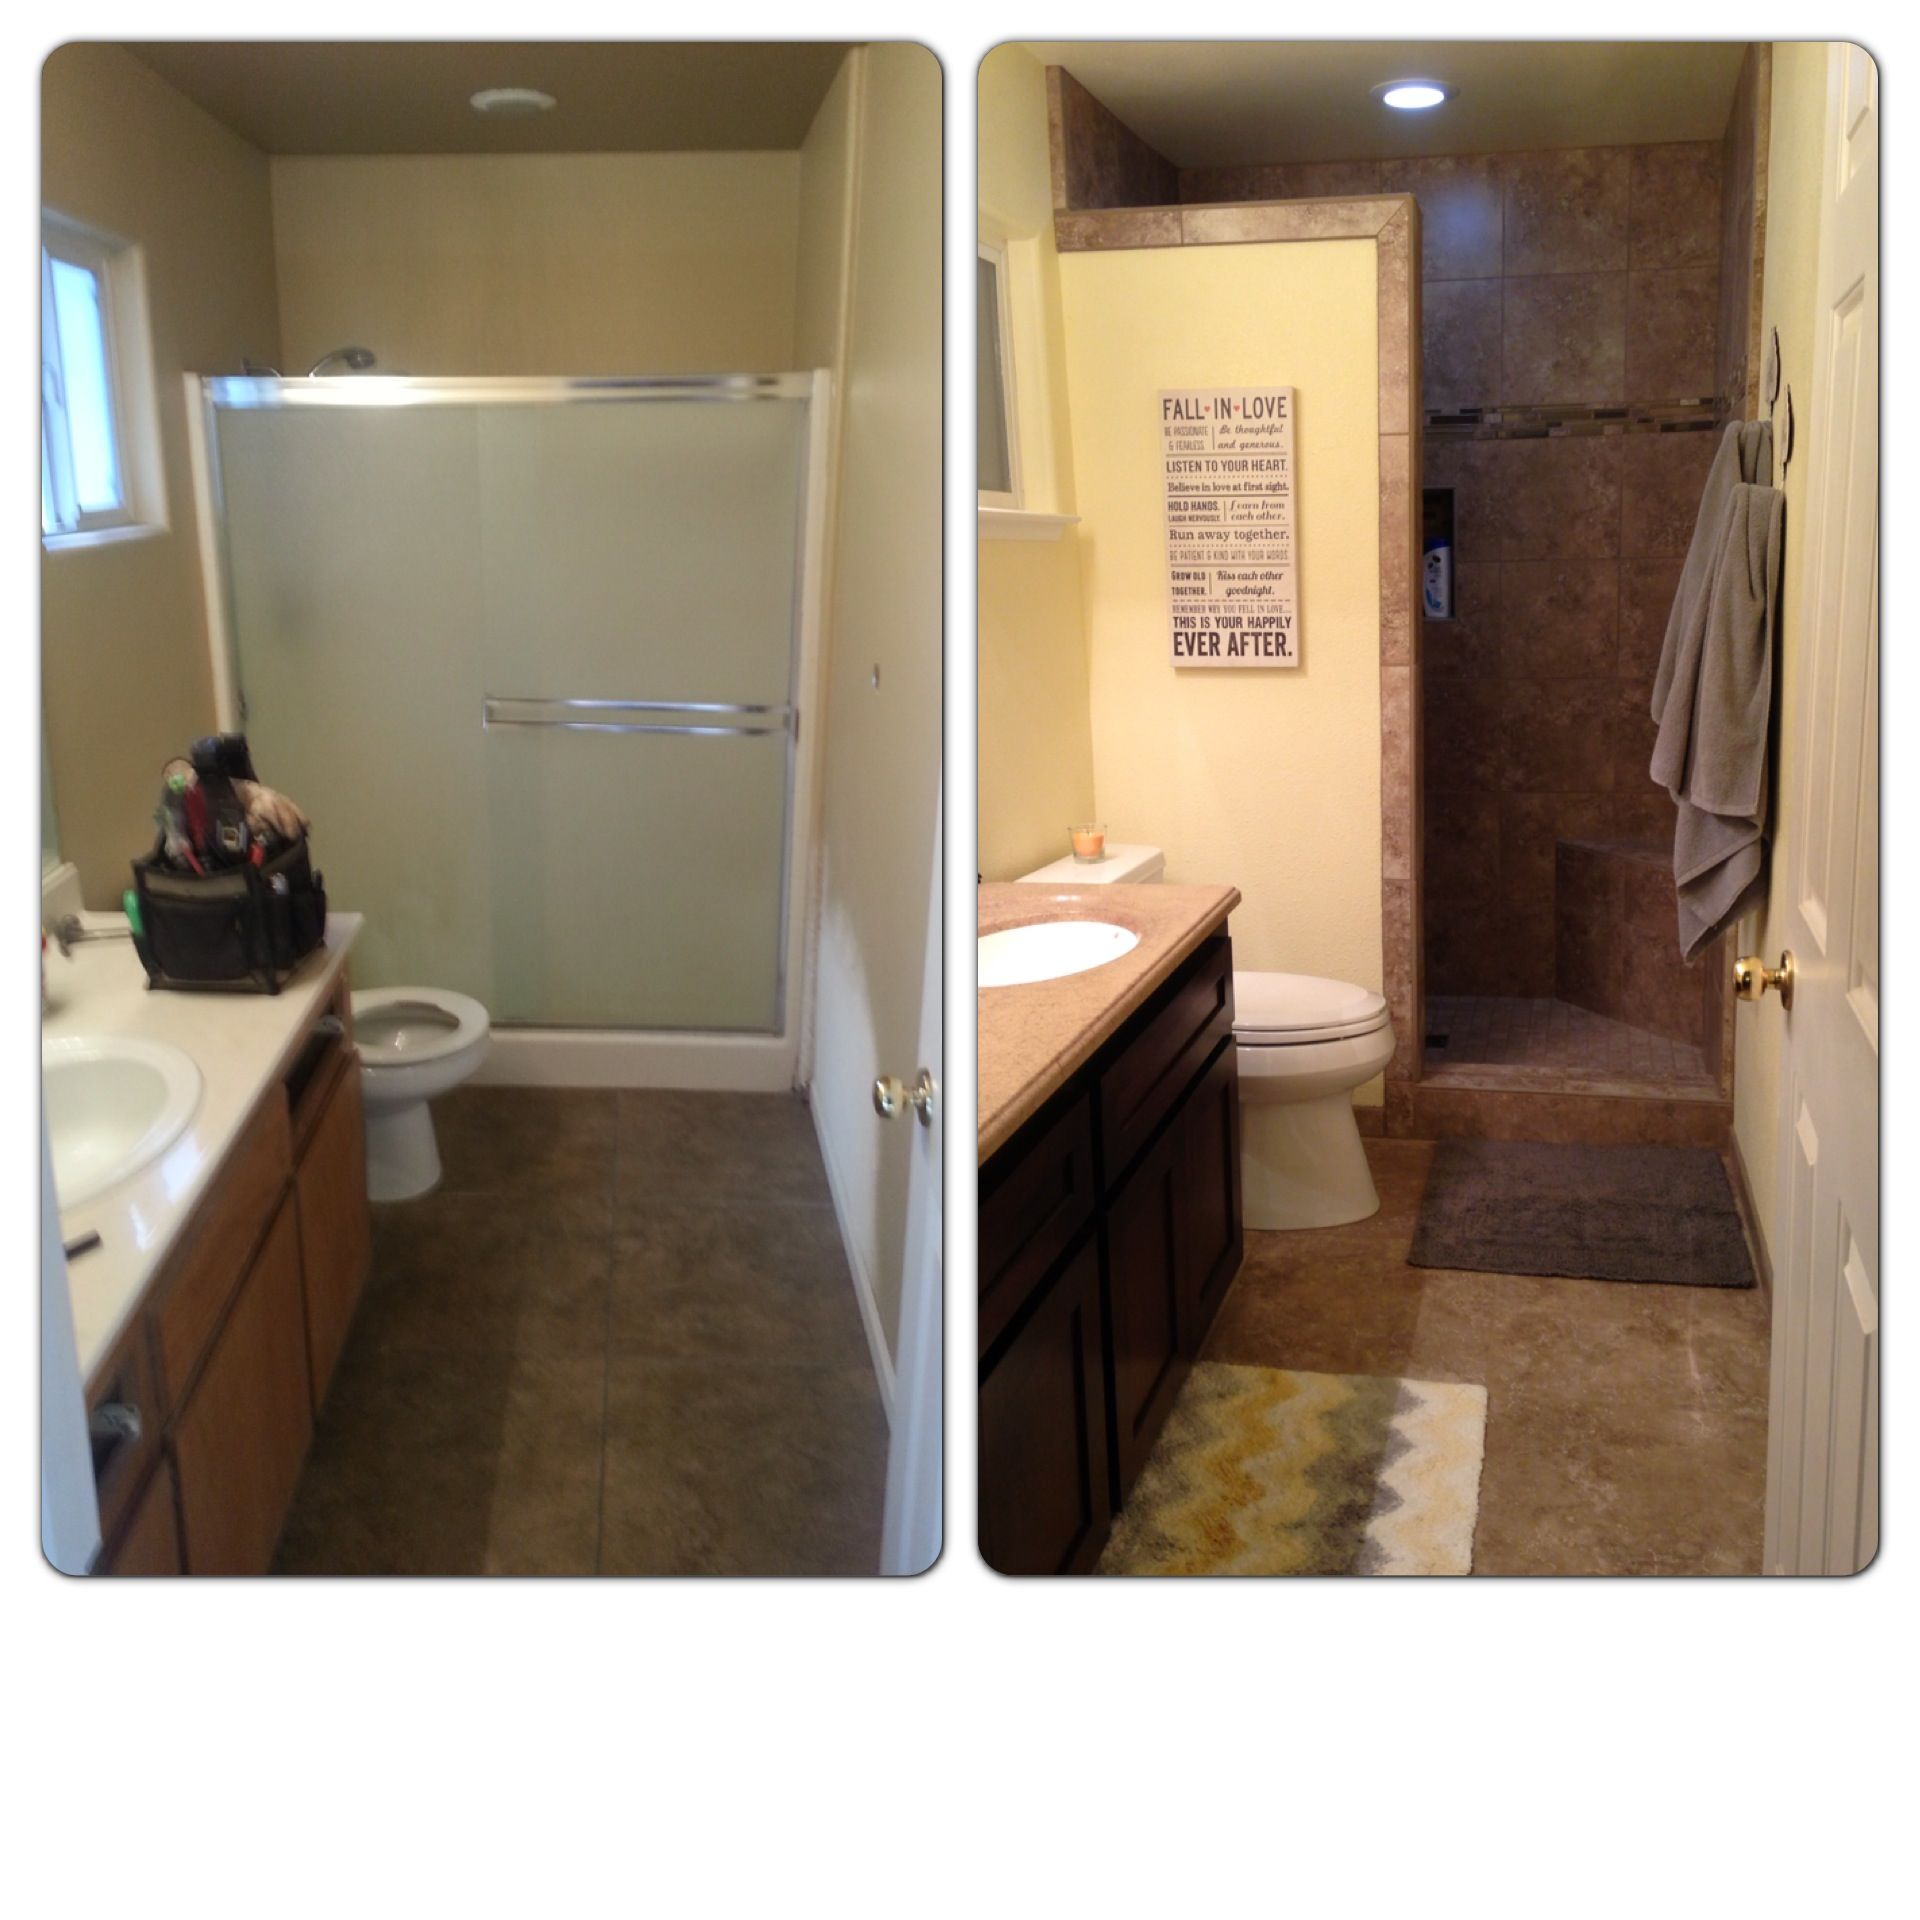 Bathroom Remodel Walk in shower Making the most of a small space